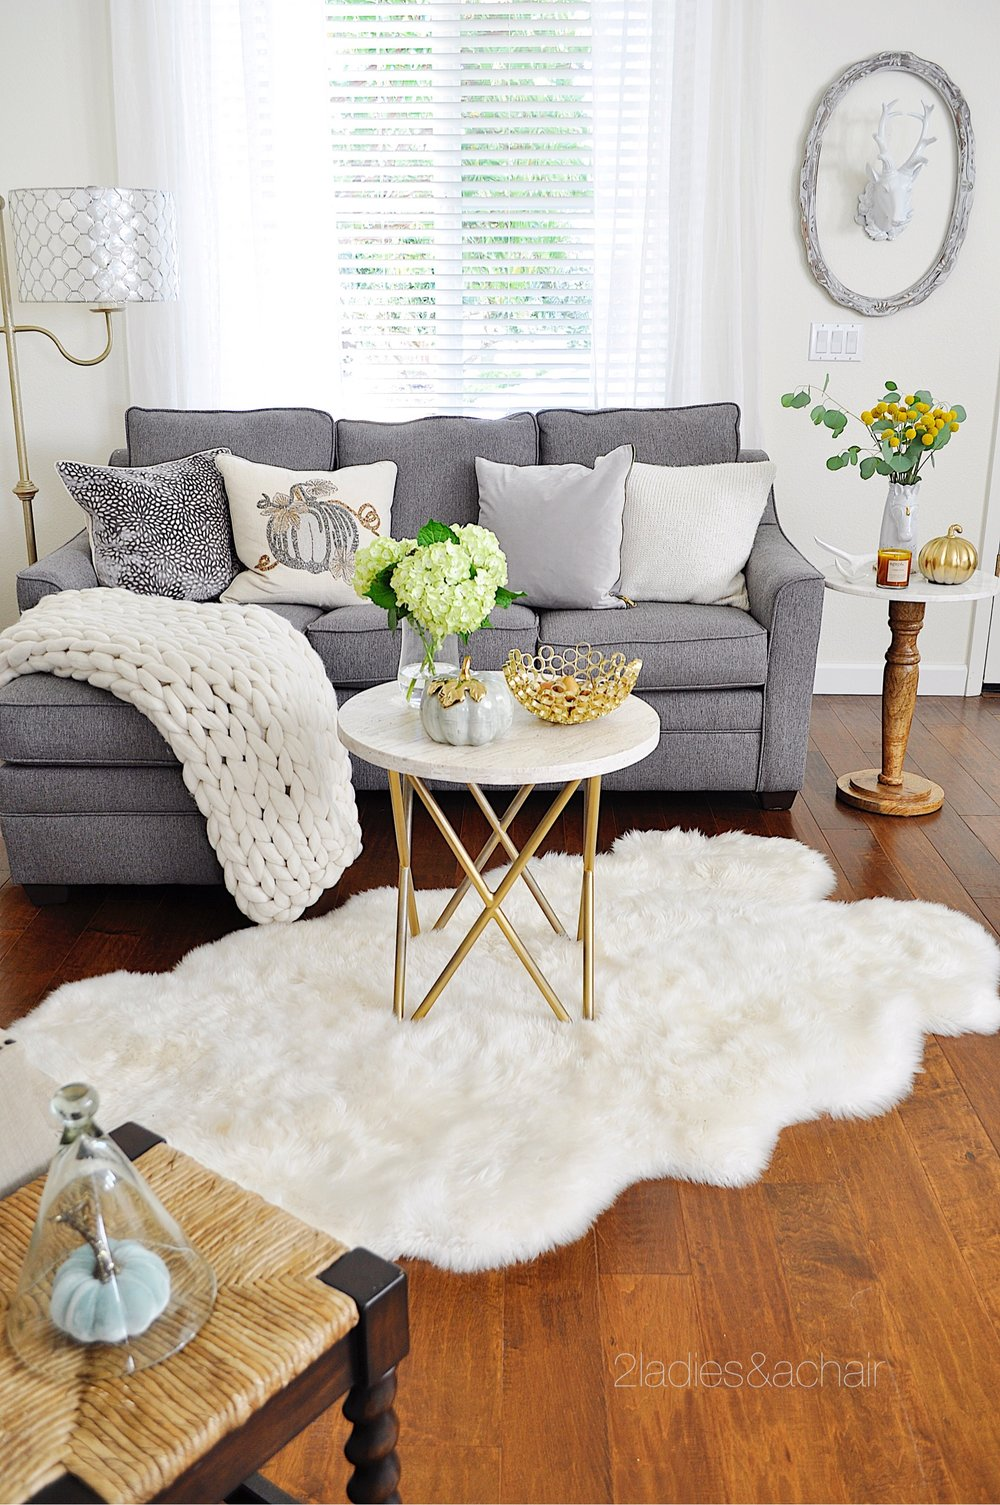 Small scale decorating ideas for the living room